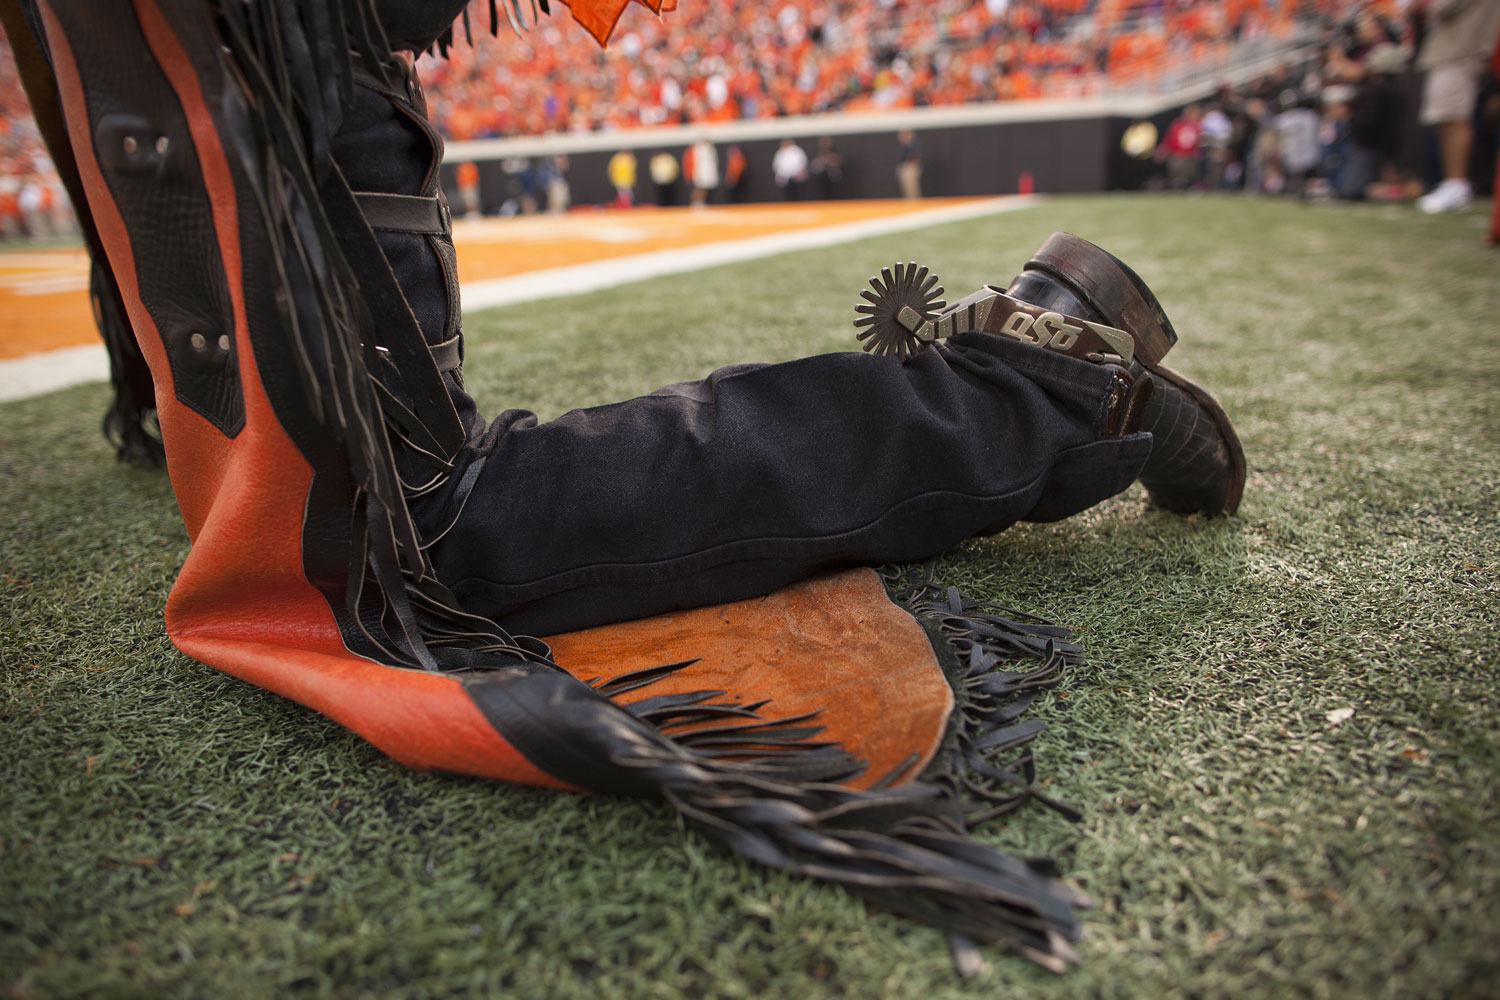 Oklahoma State's mascot Pistol Pete takes a knee along the sidelines while the Huskers and Cowboys shoot it out during last season's October contest in Stillwater, Oklaholma.